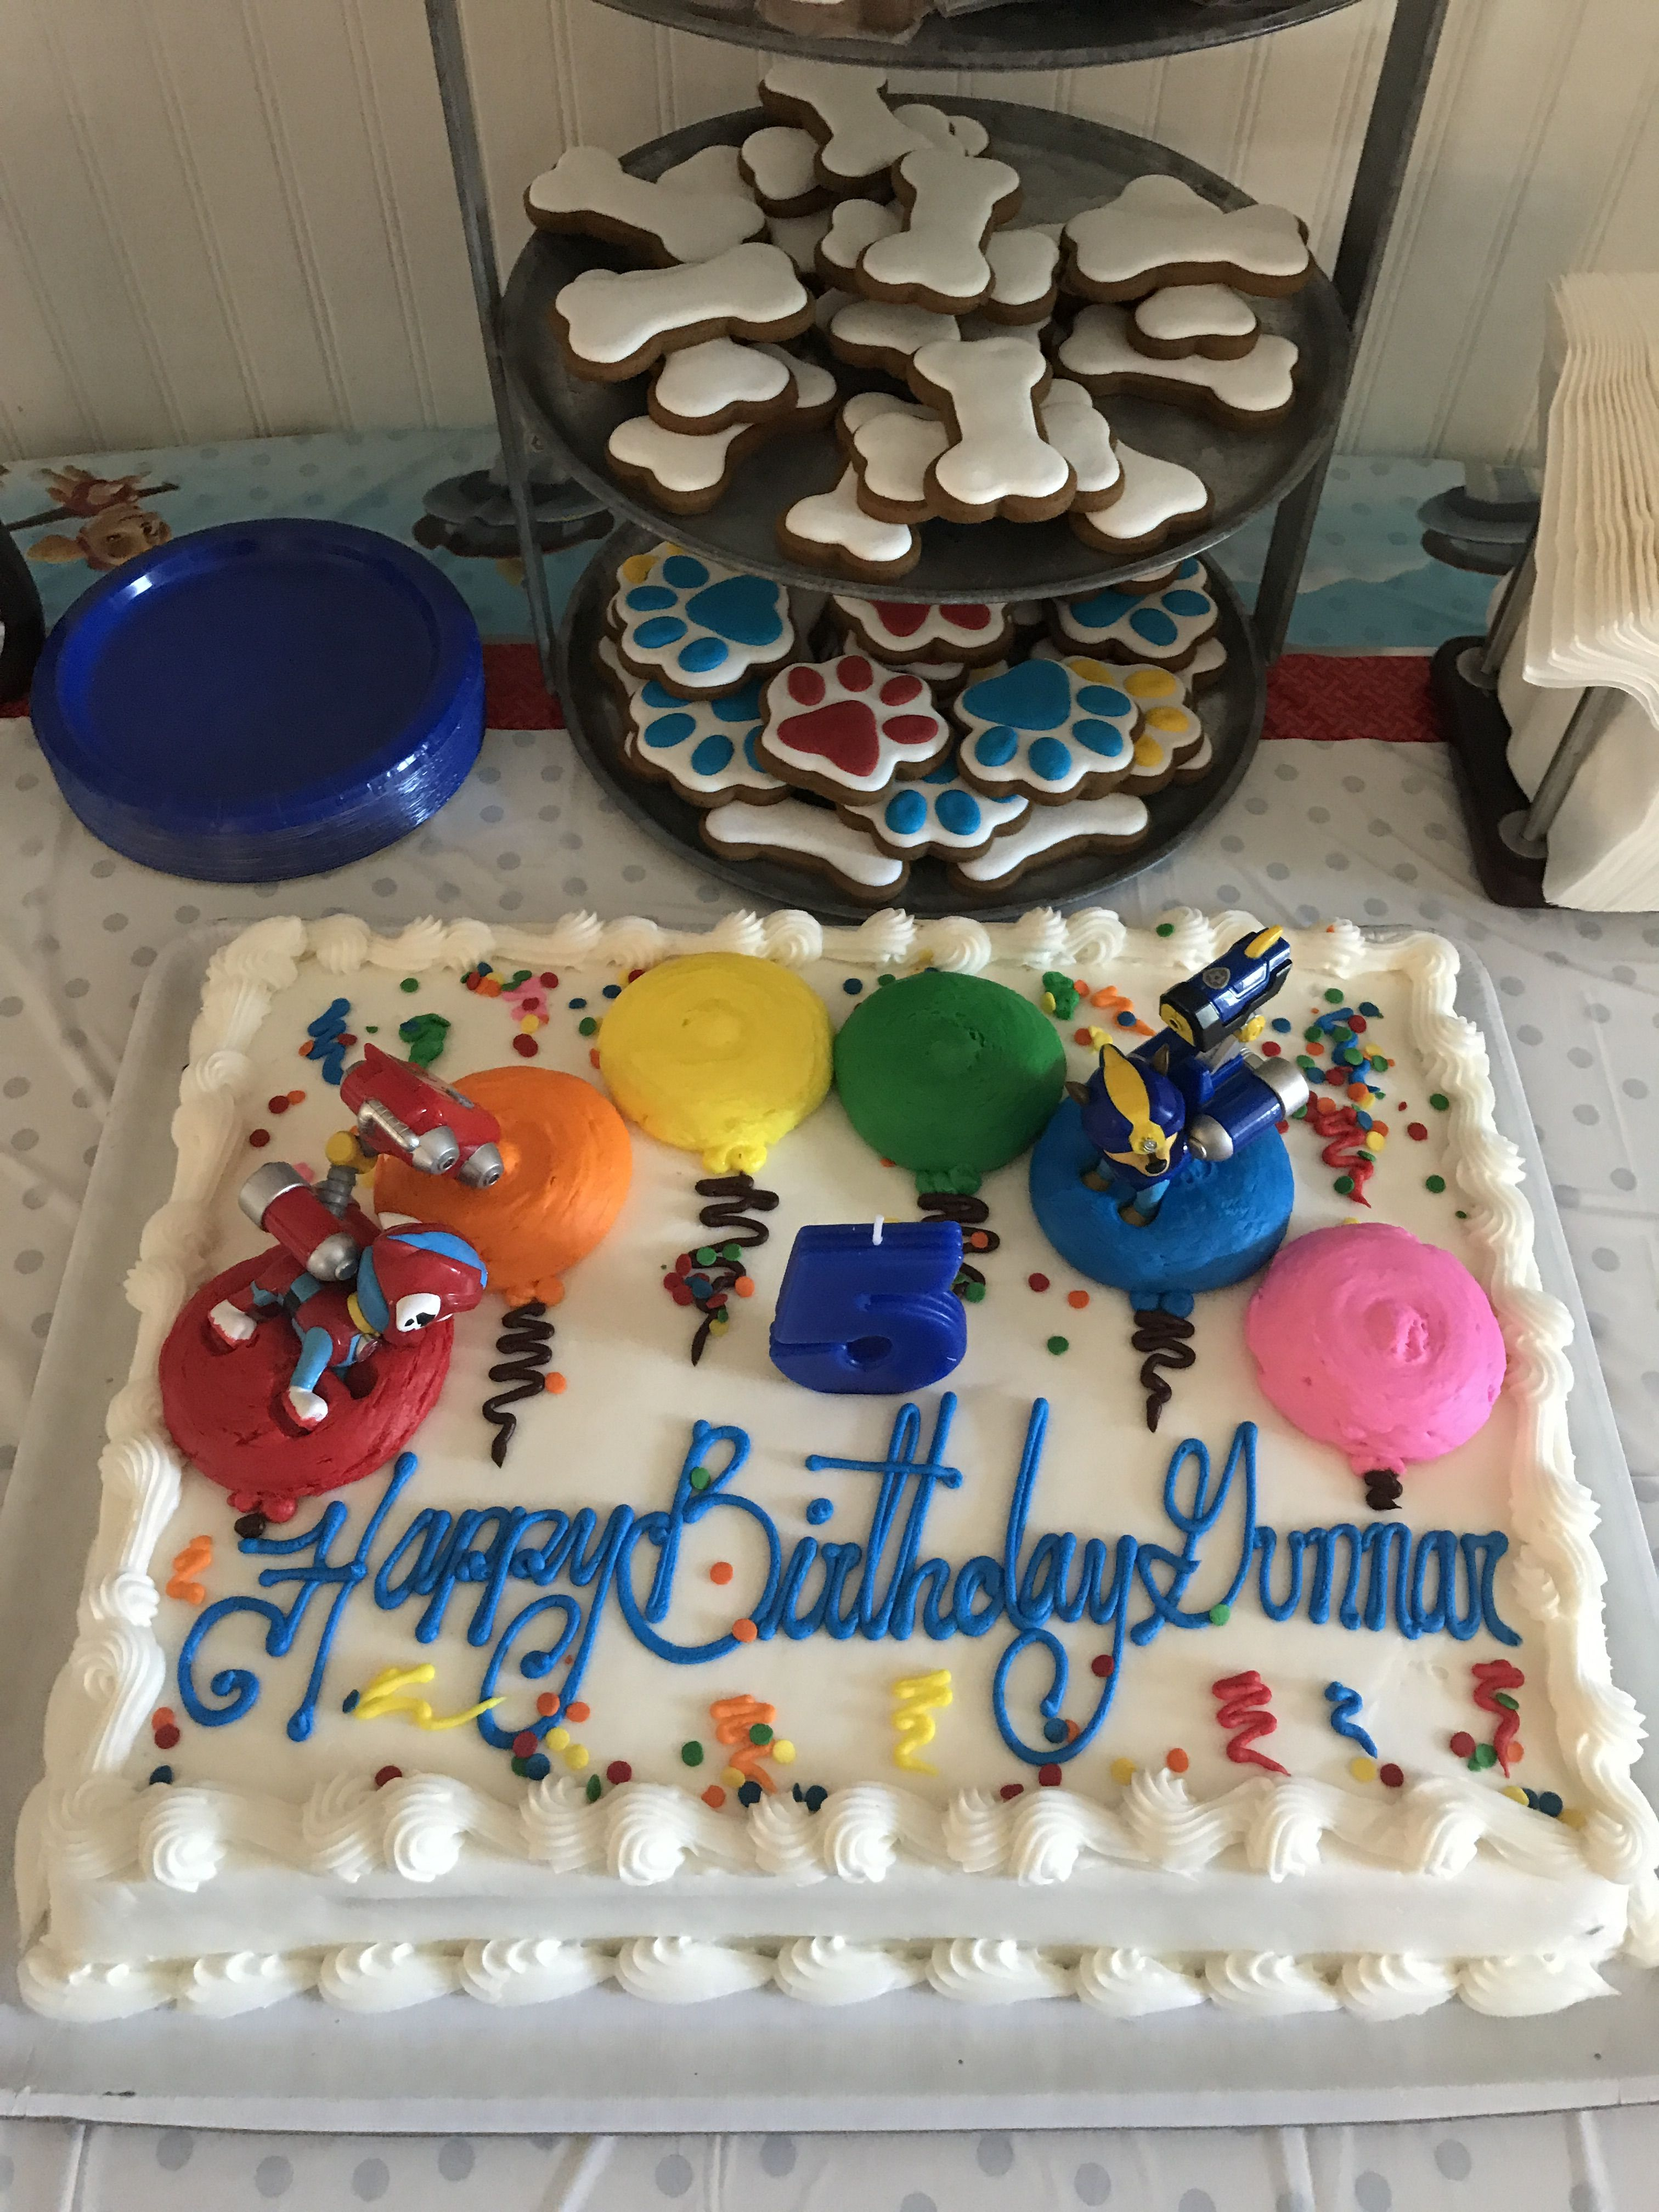 Stupendous Paw Patrol Birthday Cake Costco Cake With Images Paw Patrol Personalised Birthday Cards Veneteletsinfo